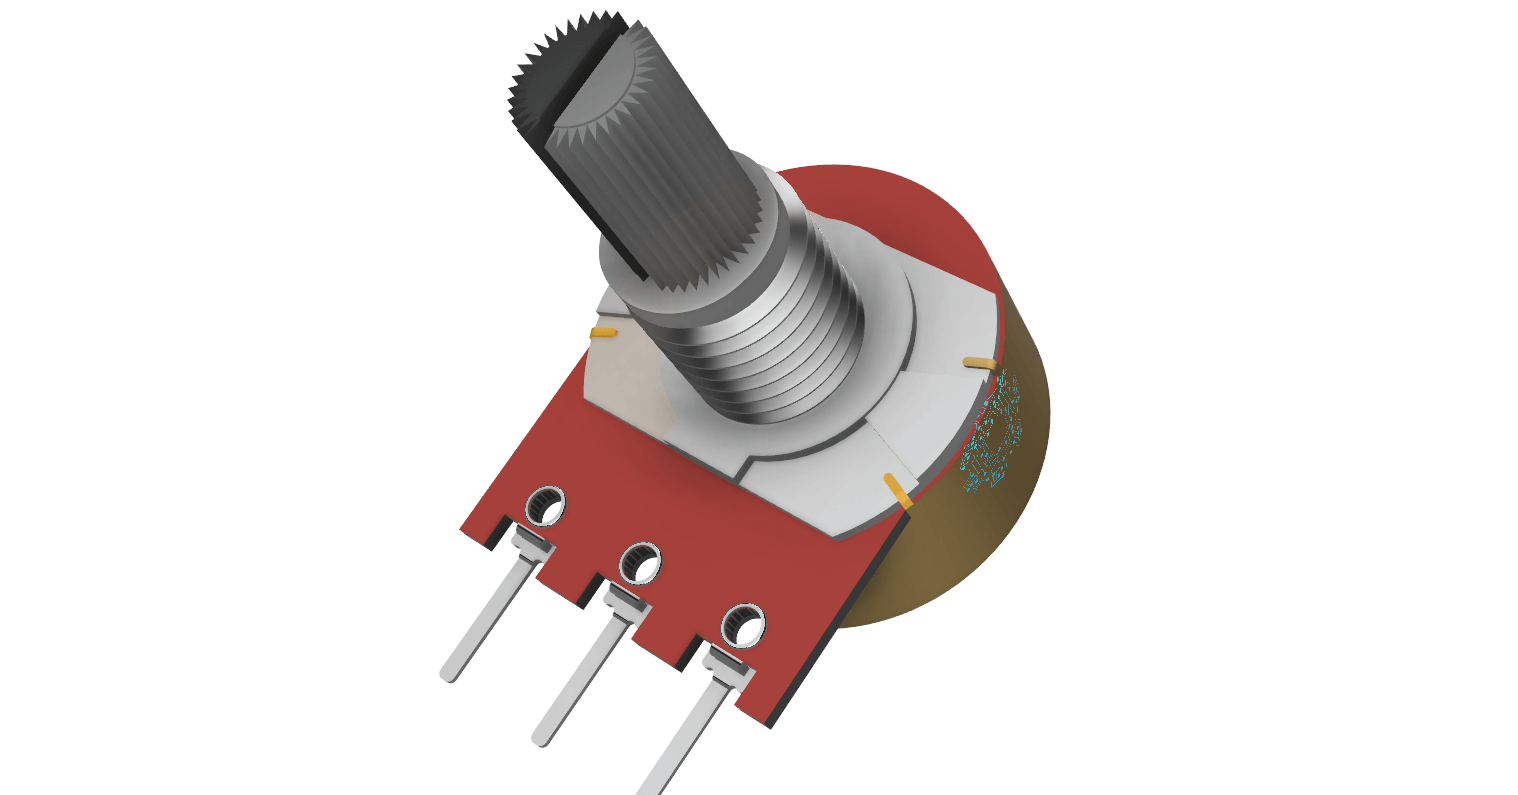 Potentiometer.